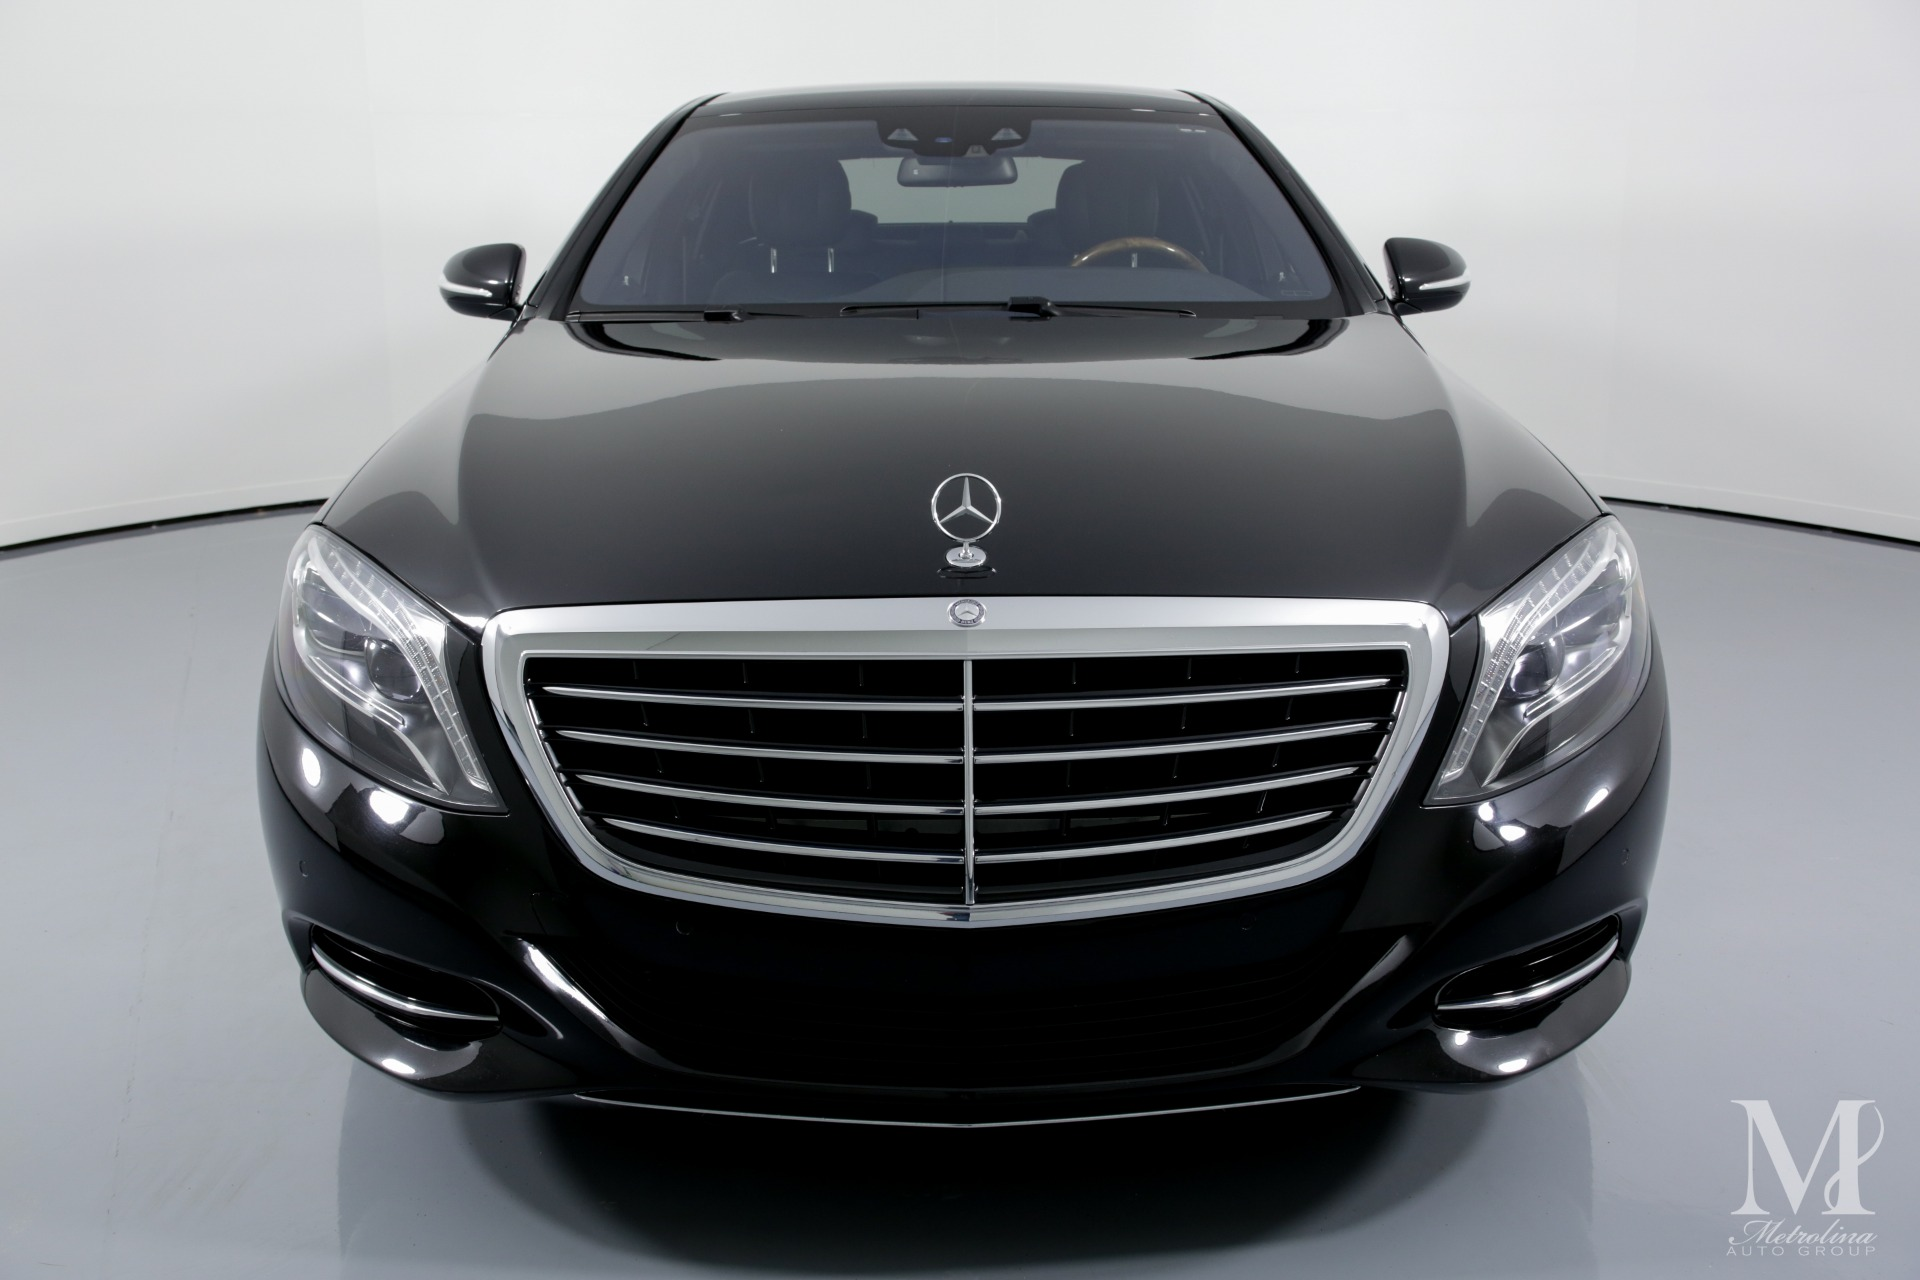 Used 2016 Mercedes-Benz S-Class S 550 4dr Sedan for sale $51,456 at Metrolina Auto Group in Charlotte NC 28217 - 3